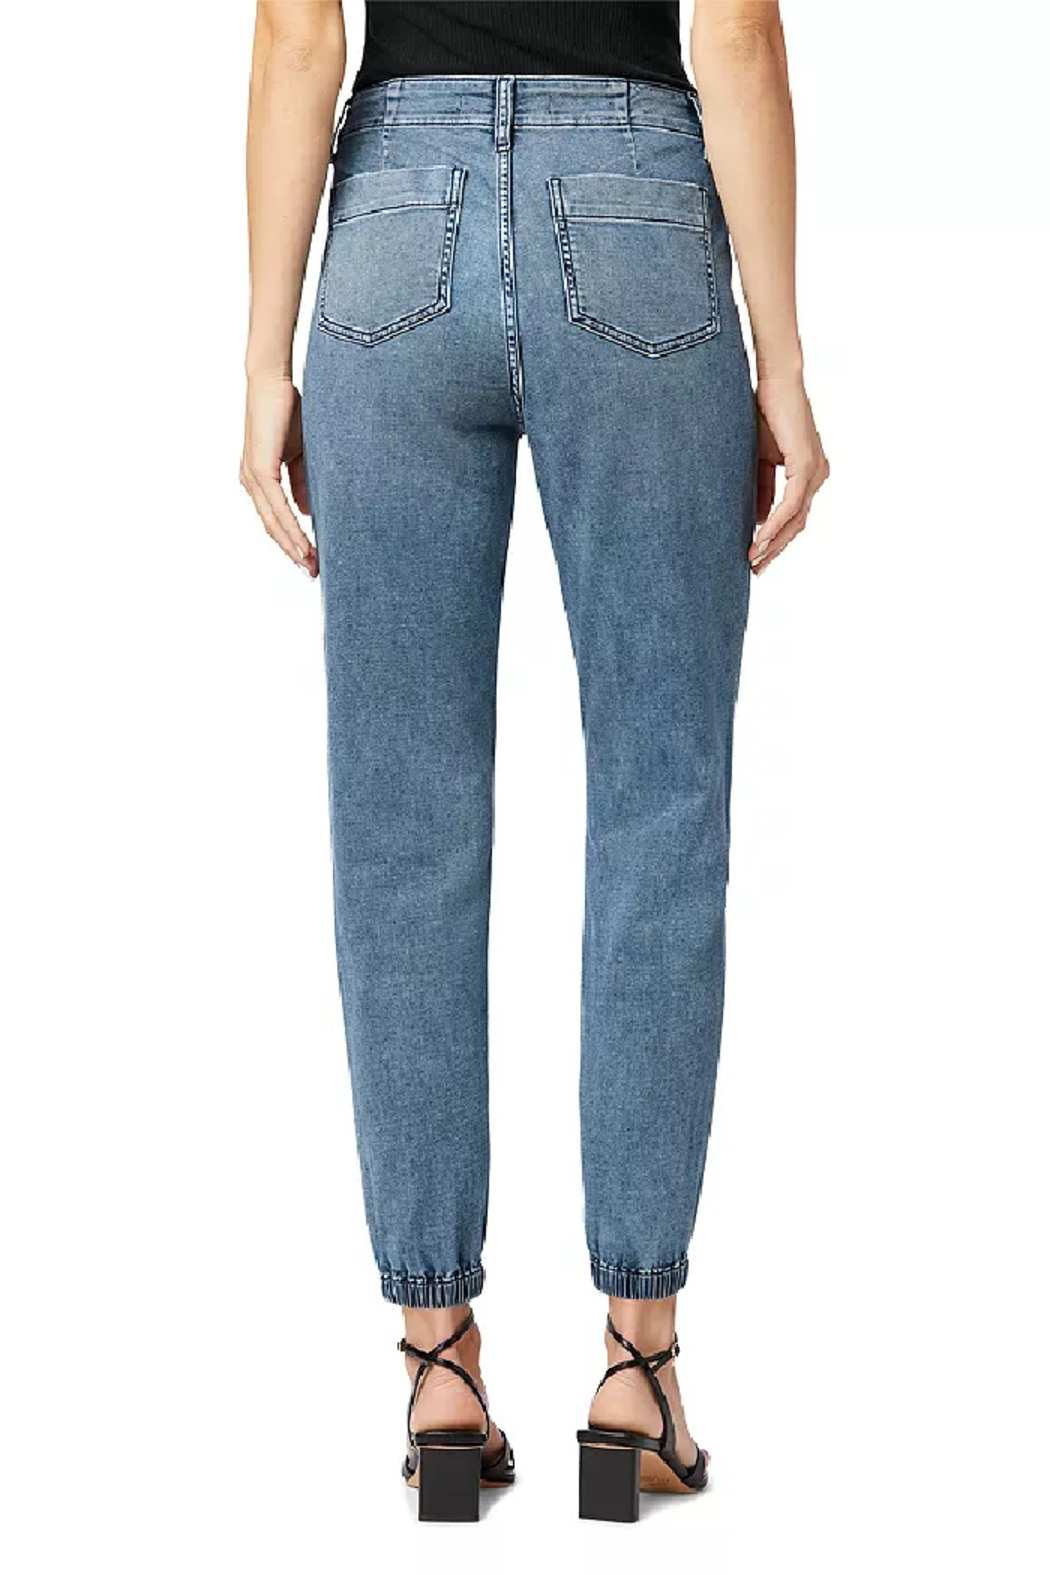 Joe's Jeans French Terry Jogger - Front Full Image